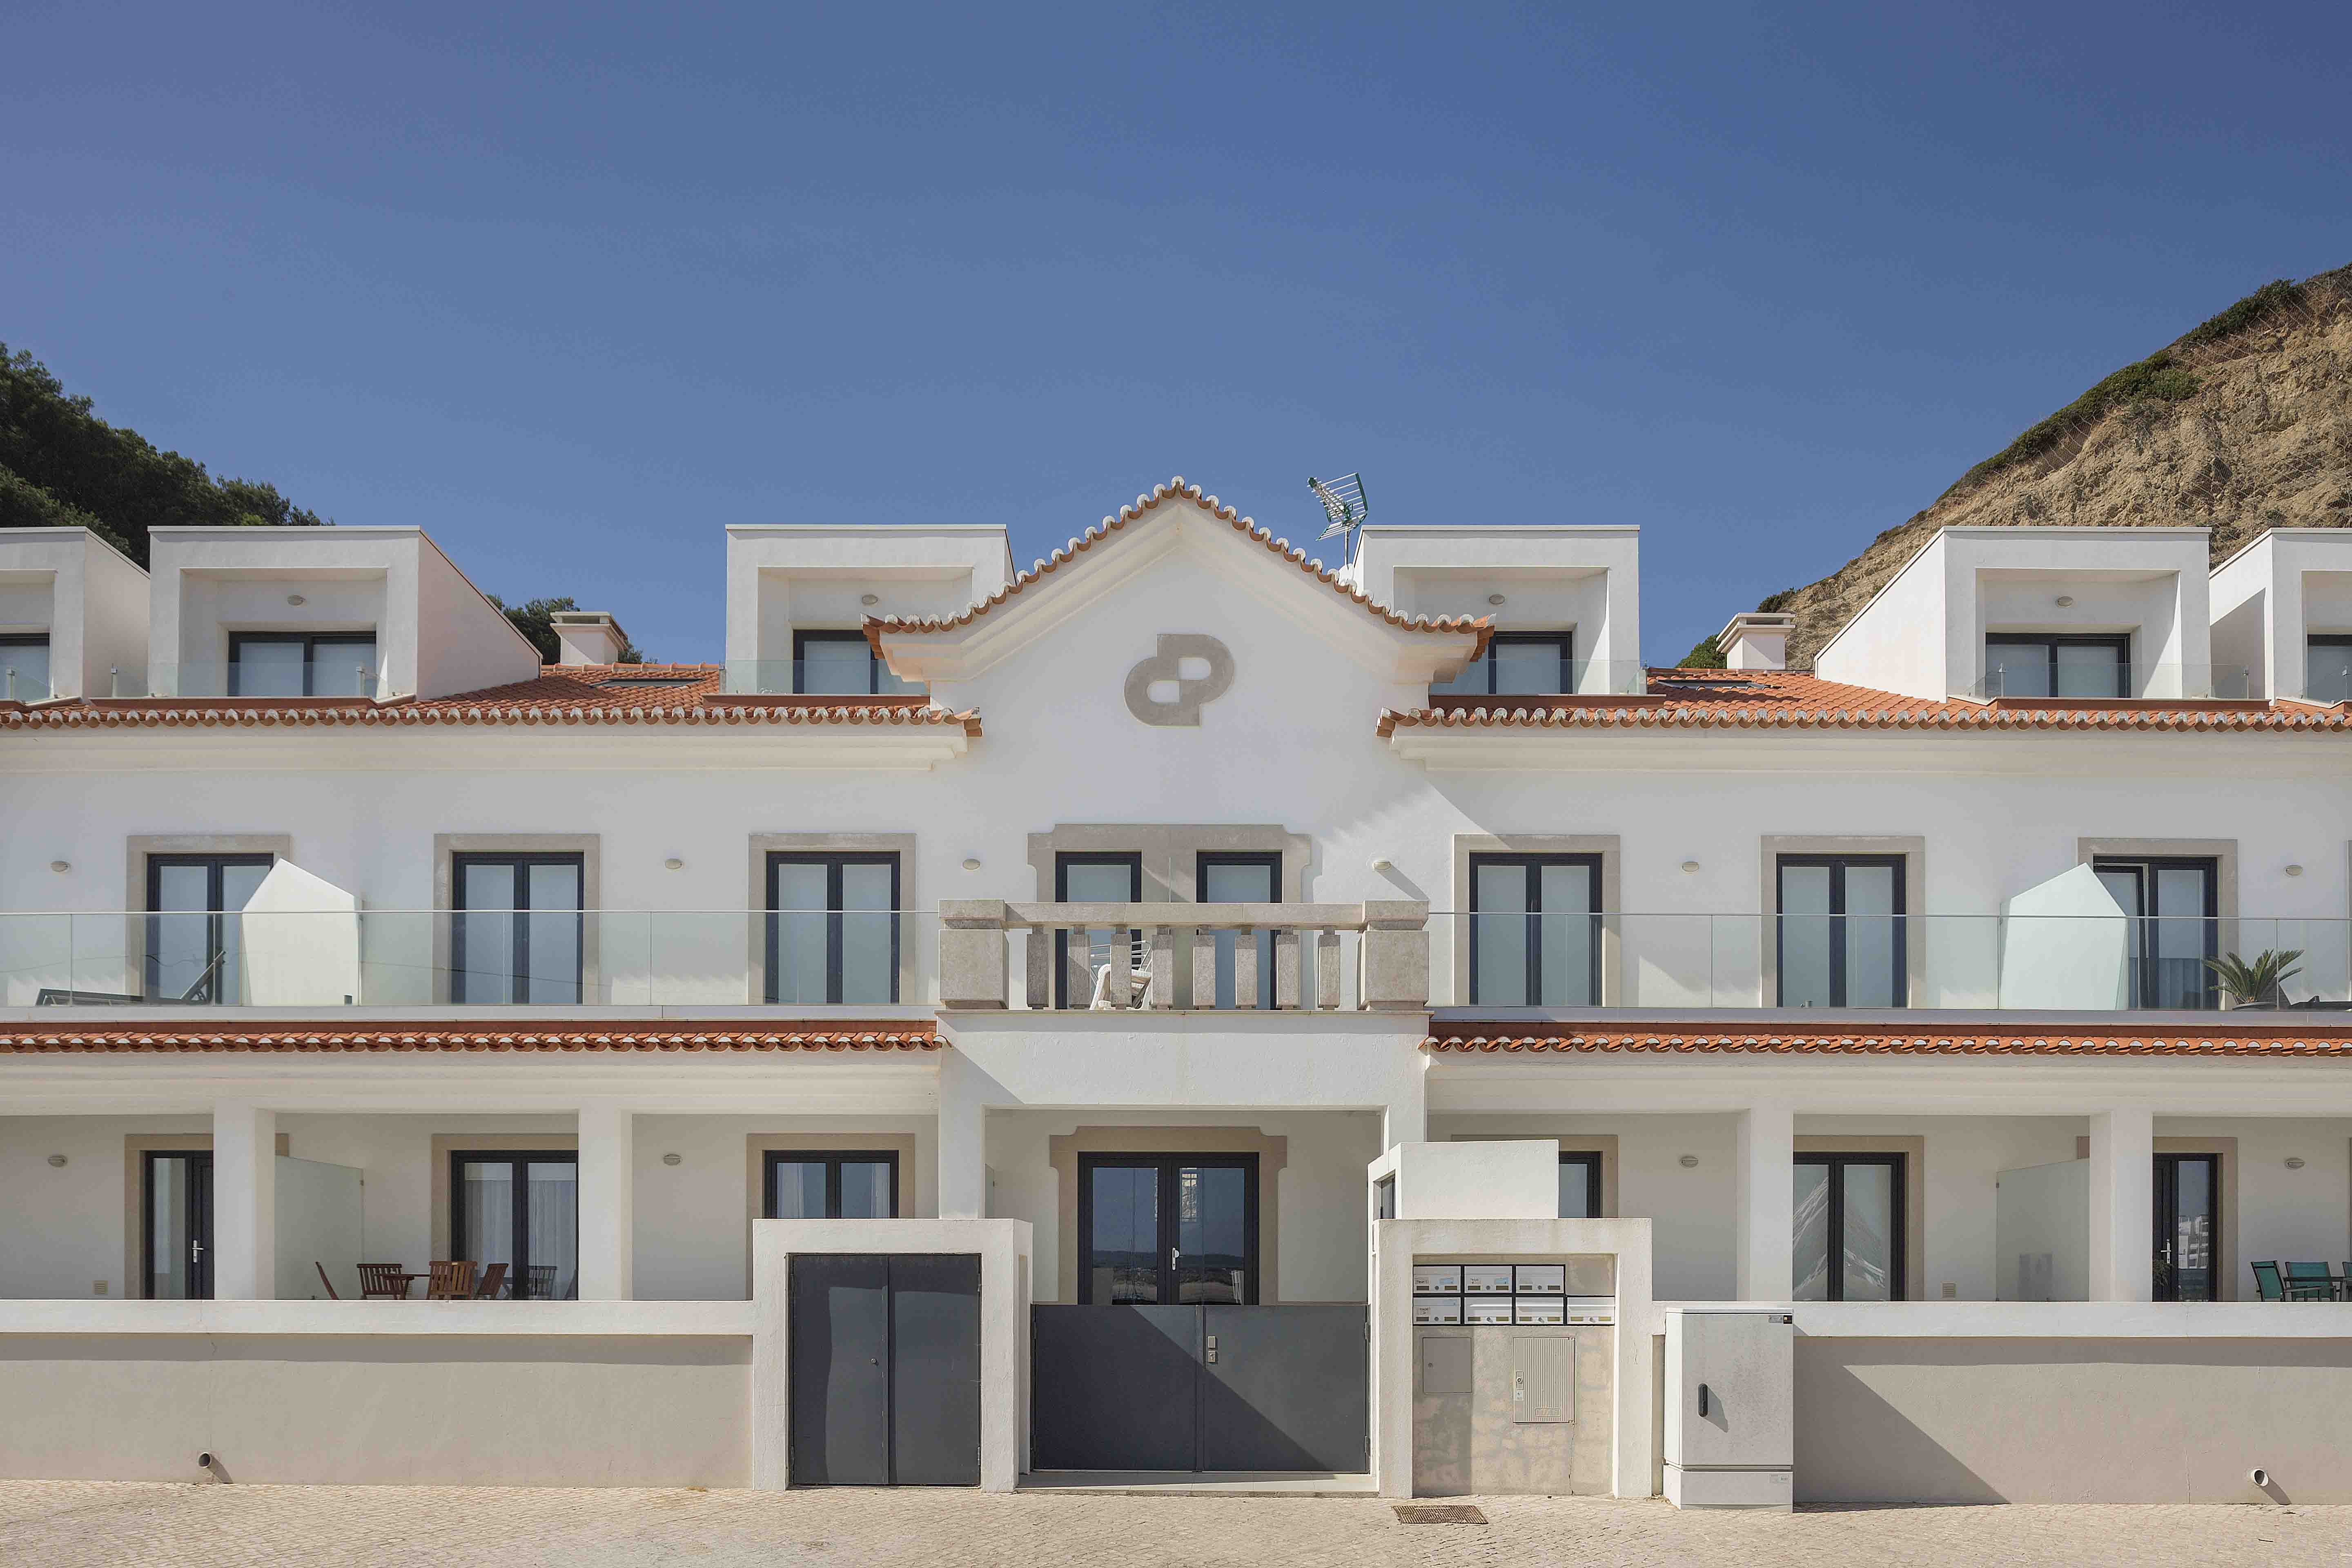 28-cais-sao-martinho-porto-silver-coast-new-buil-construction-portugal-for-sale